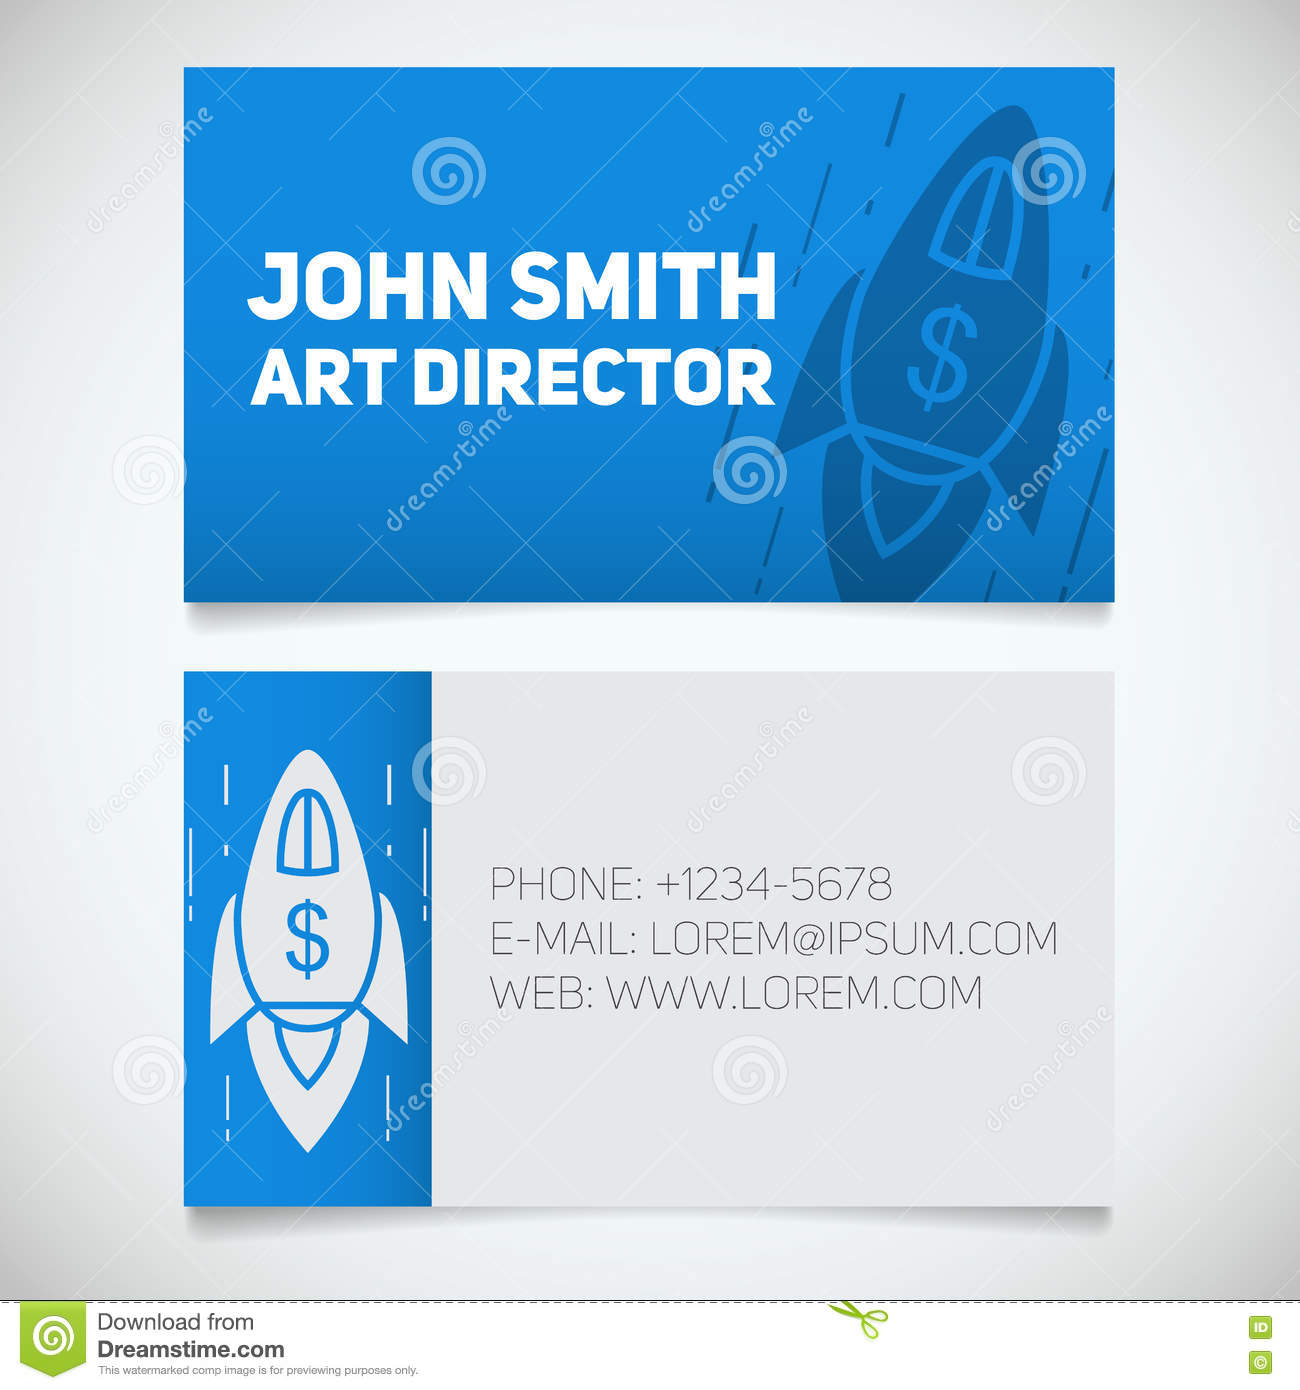 Calibre Dimpression De Carte Visite Professionnelle Directeur Artistique Spaceship Logo Daccomplissement But Concept Construction